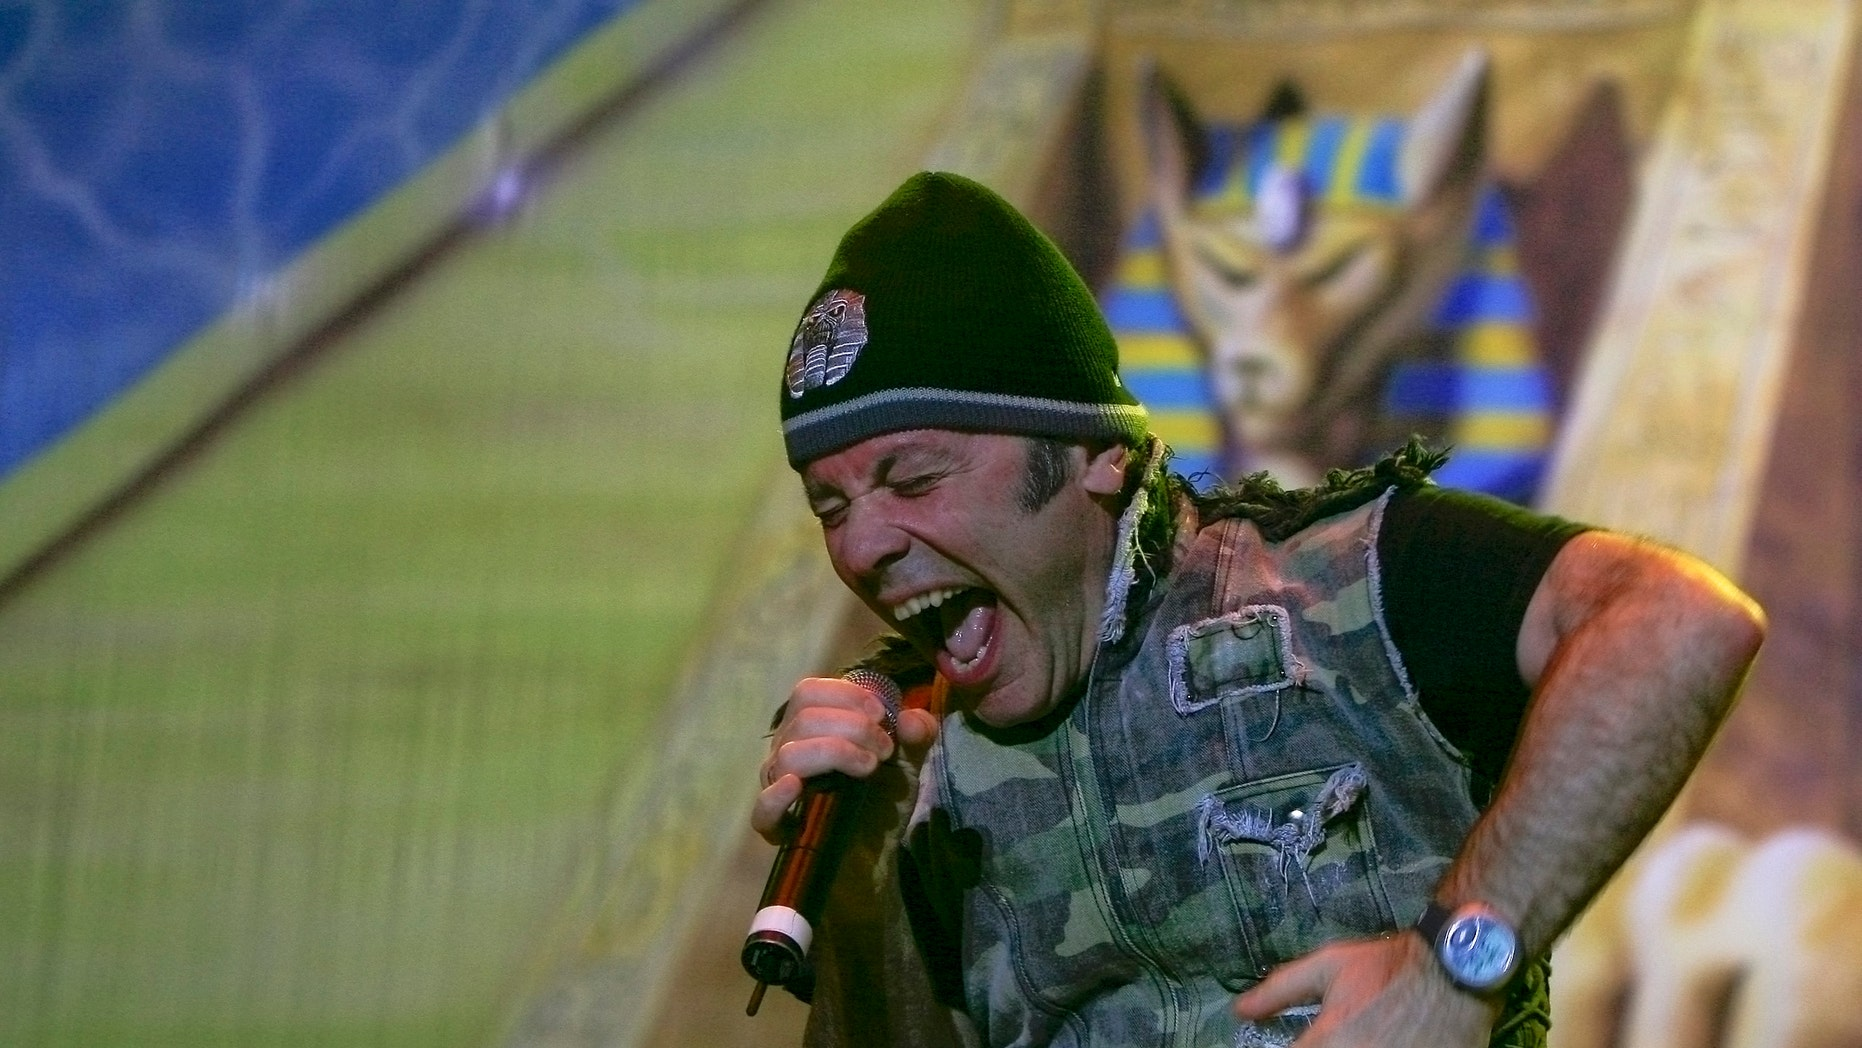 """British heavy metal band Iron Maiden's lead vocalist Bruce Dickinson performs during a concert at the Morera Soto Stadium in Alajuela March 3, 2009. The band, on their """"Somewhere back in time"""" tour, performed for the second time in the country. REUTERS/Monica Quesada (COSTA RICA) - RTXCBO0"""